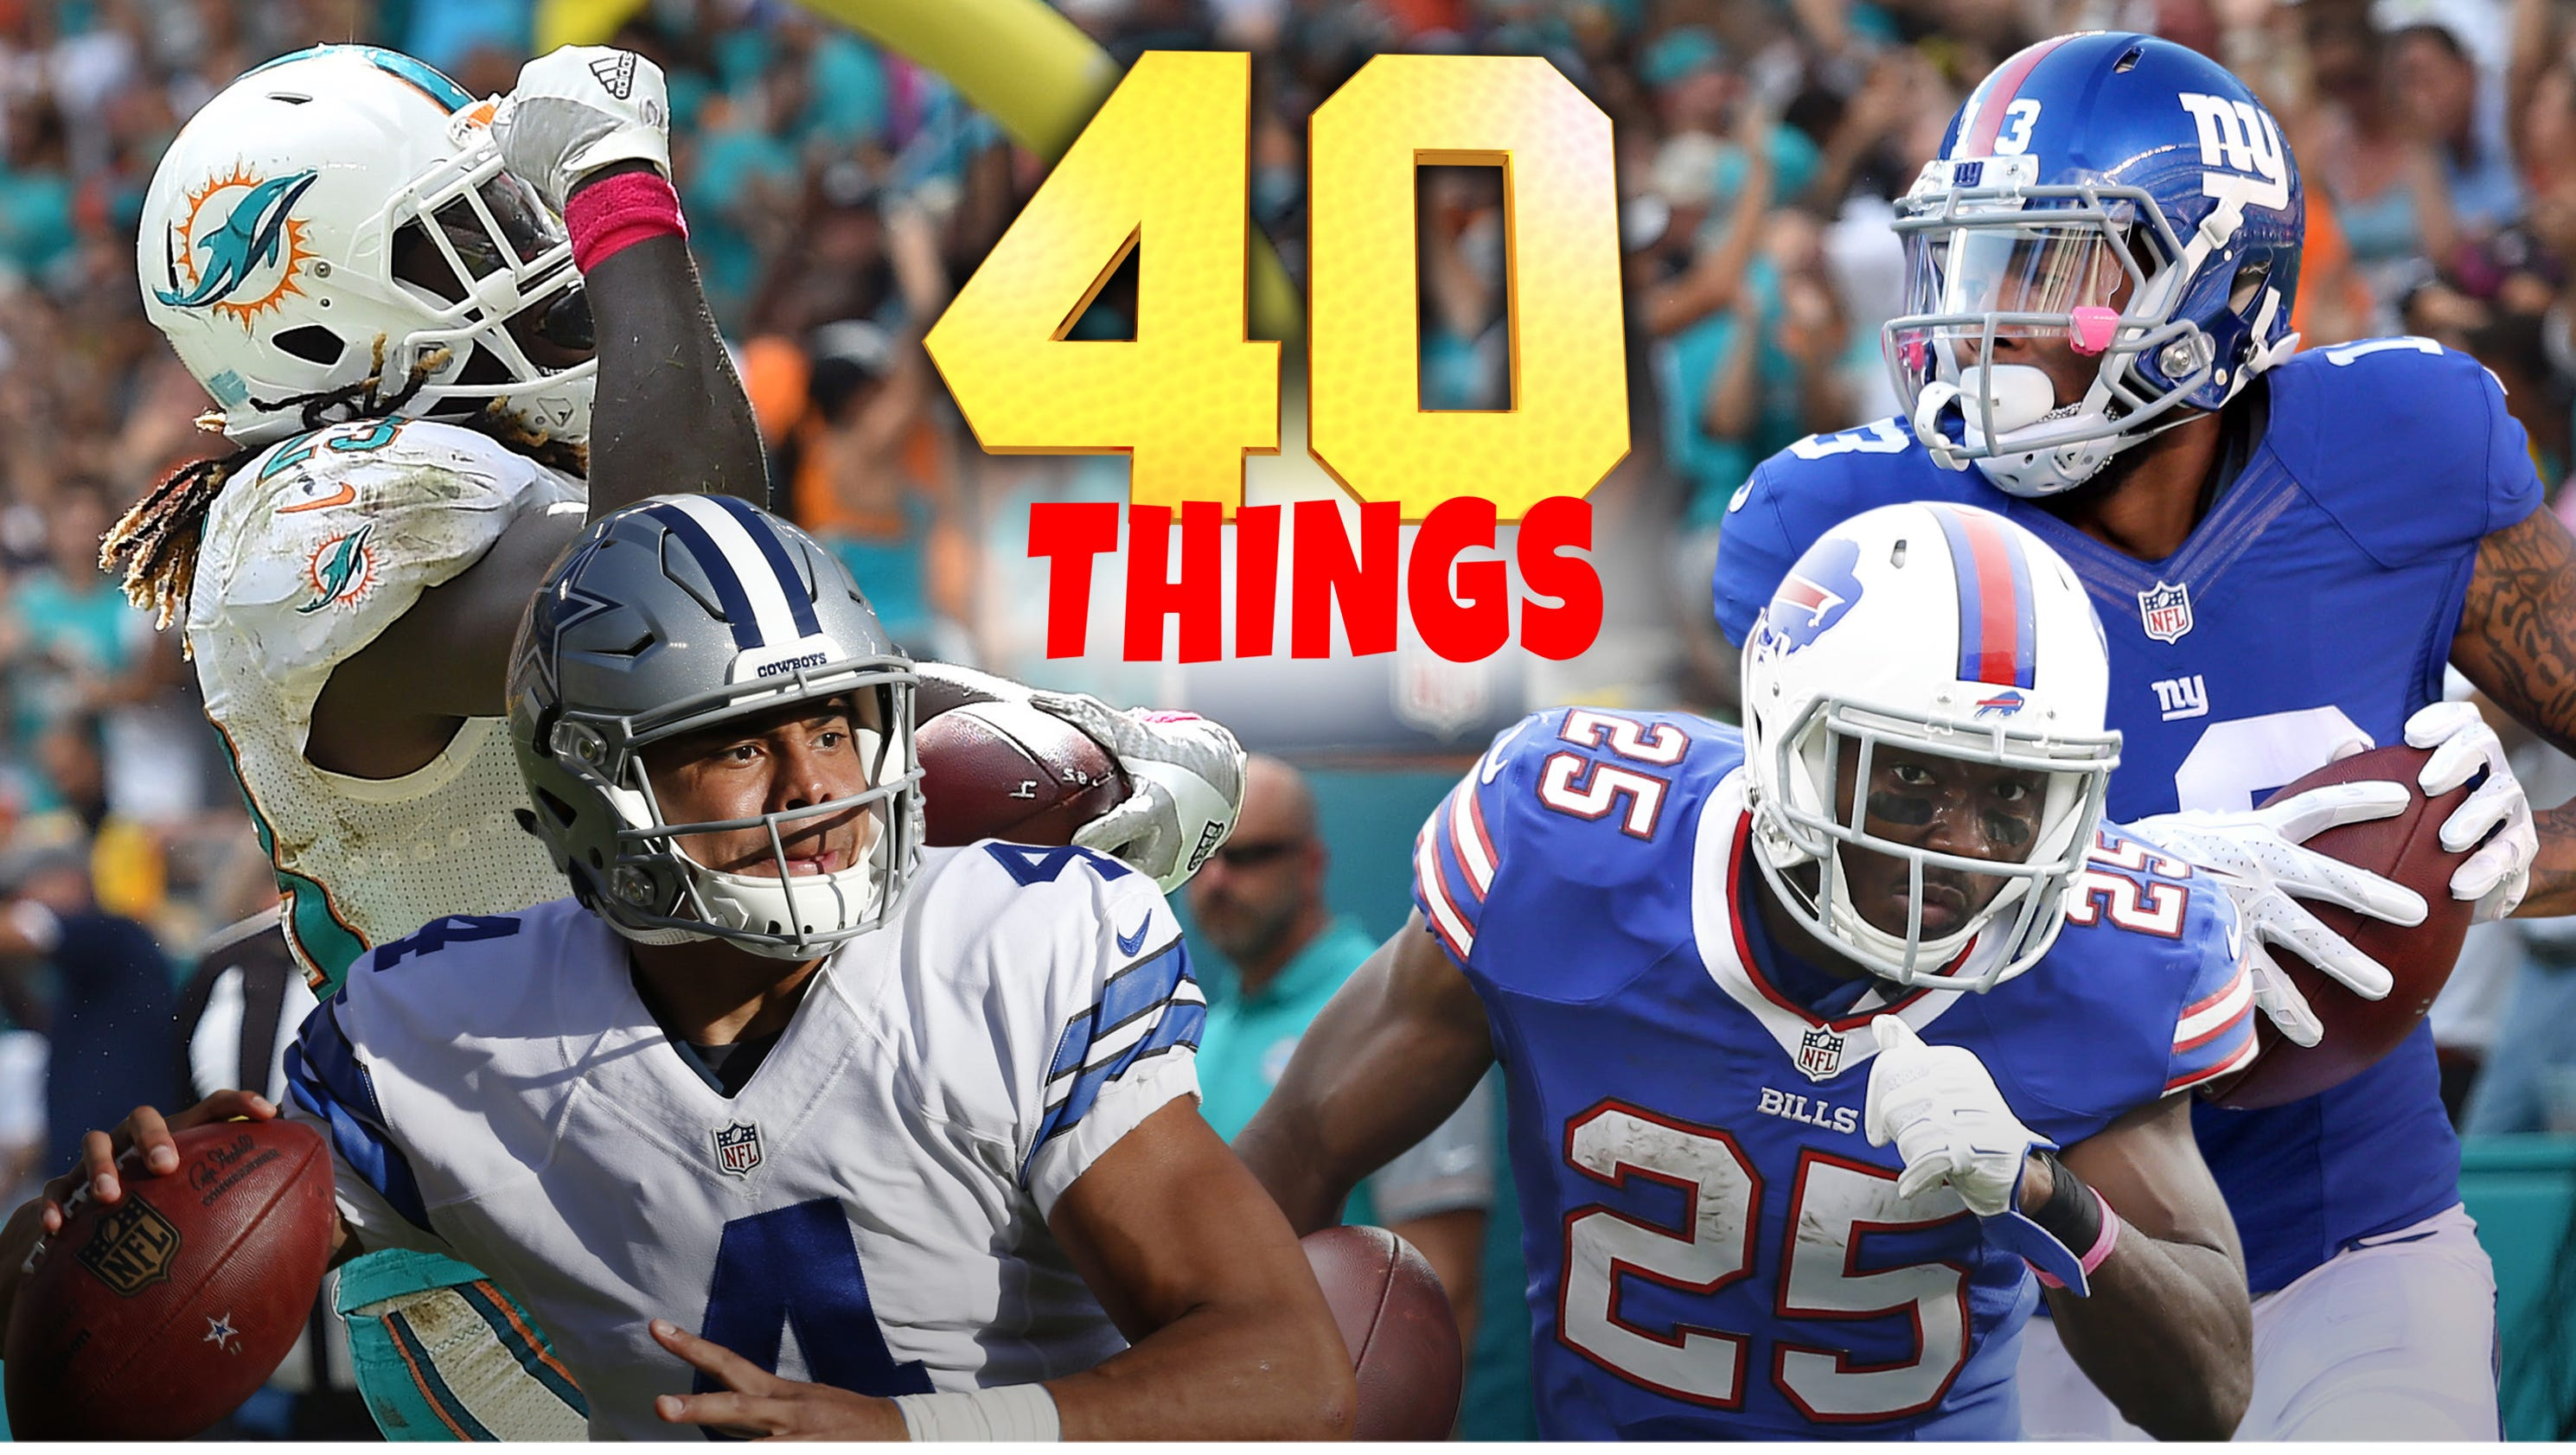 636122505784932417-nfl-40things-wk6-sheet